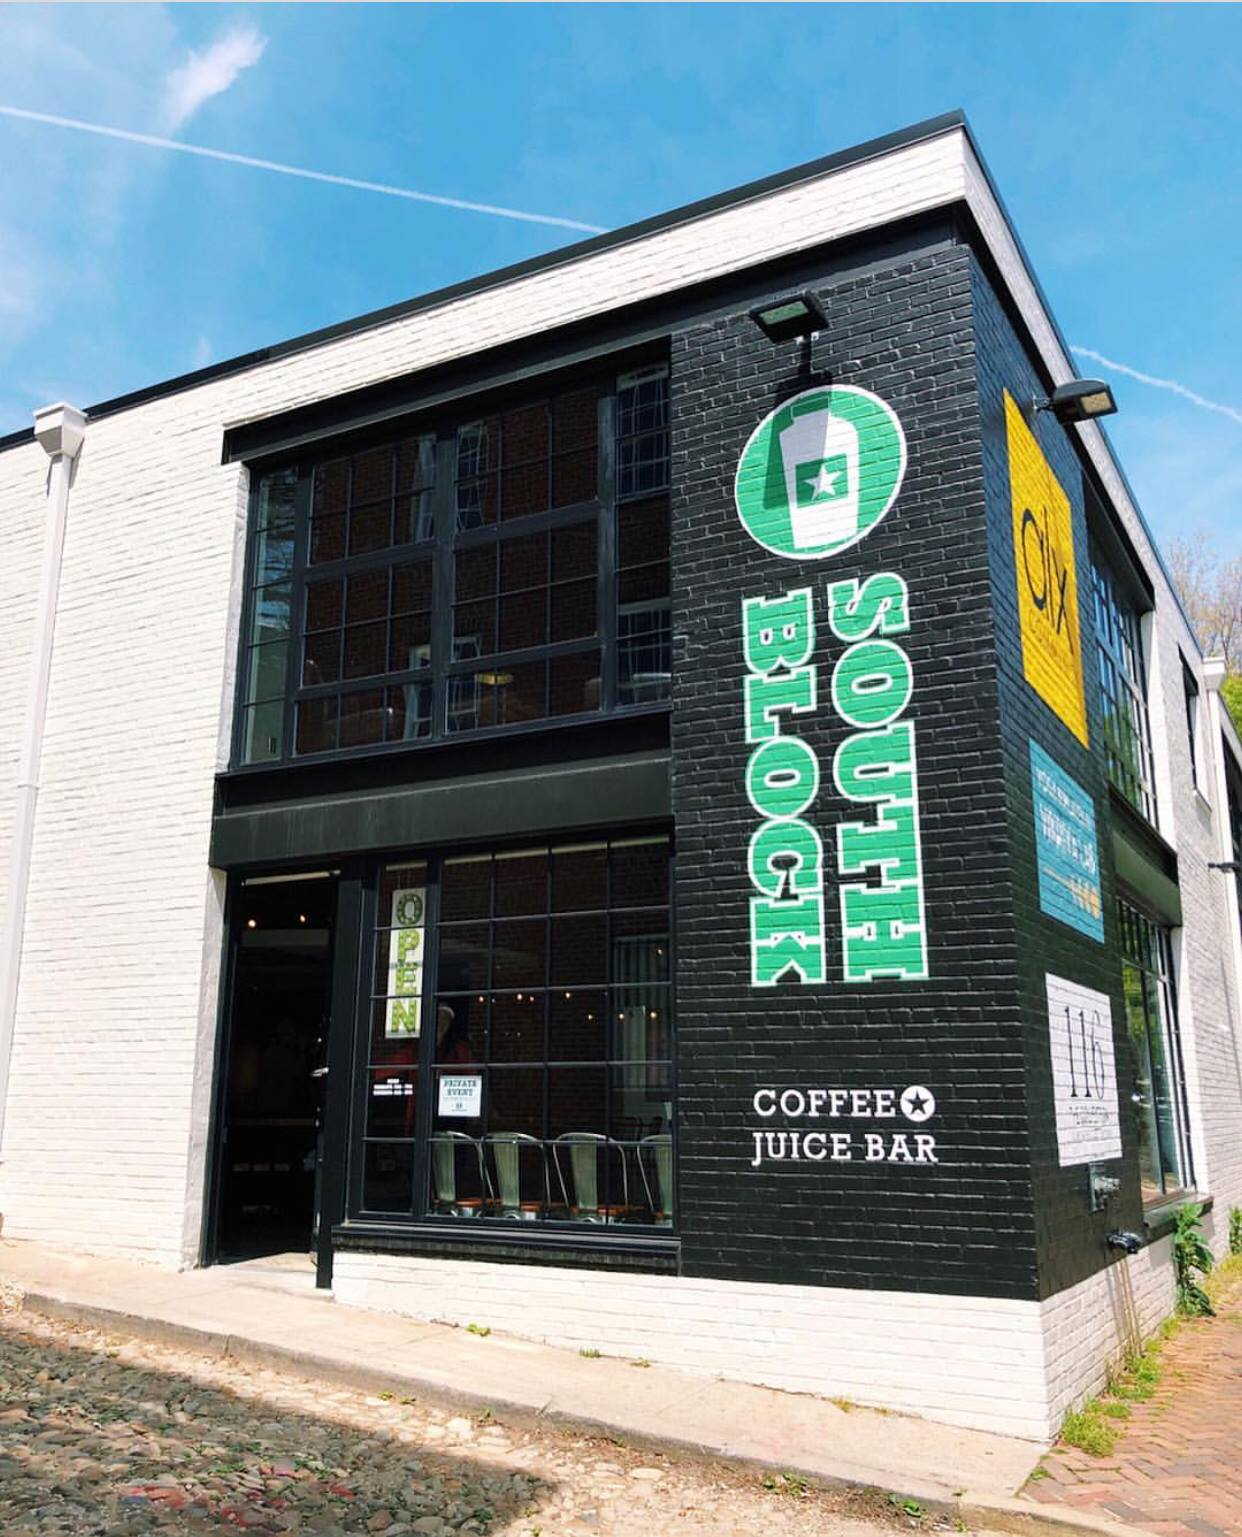 A New Co-Working Space Has Opened in Old Town, and It's Got Yoga and A Juice Bar